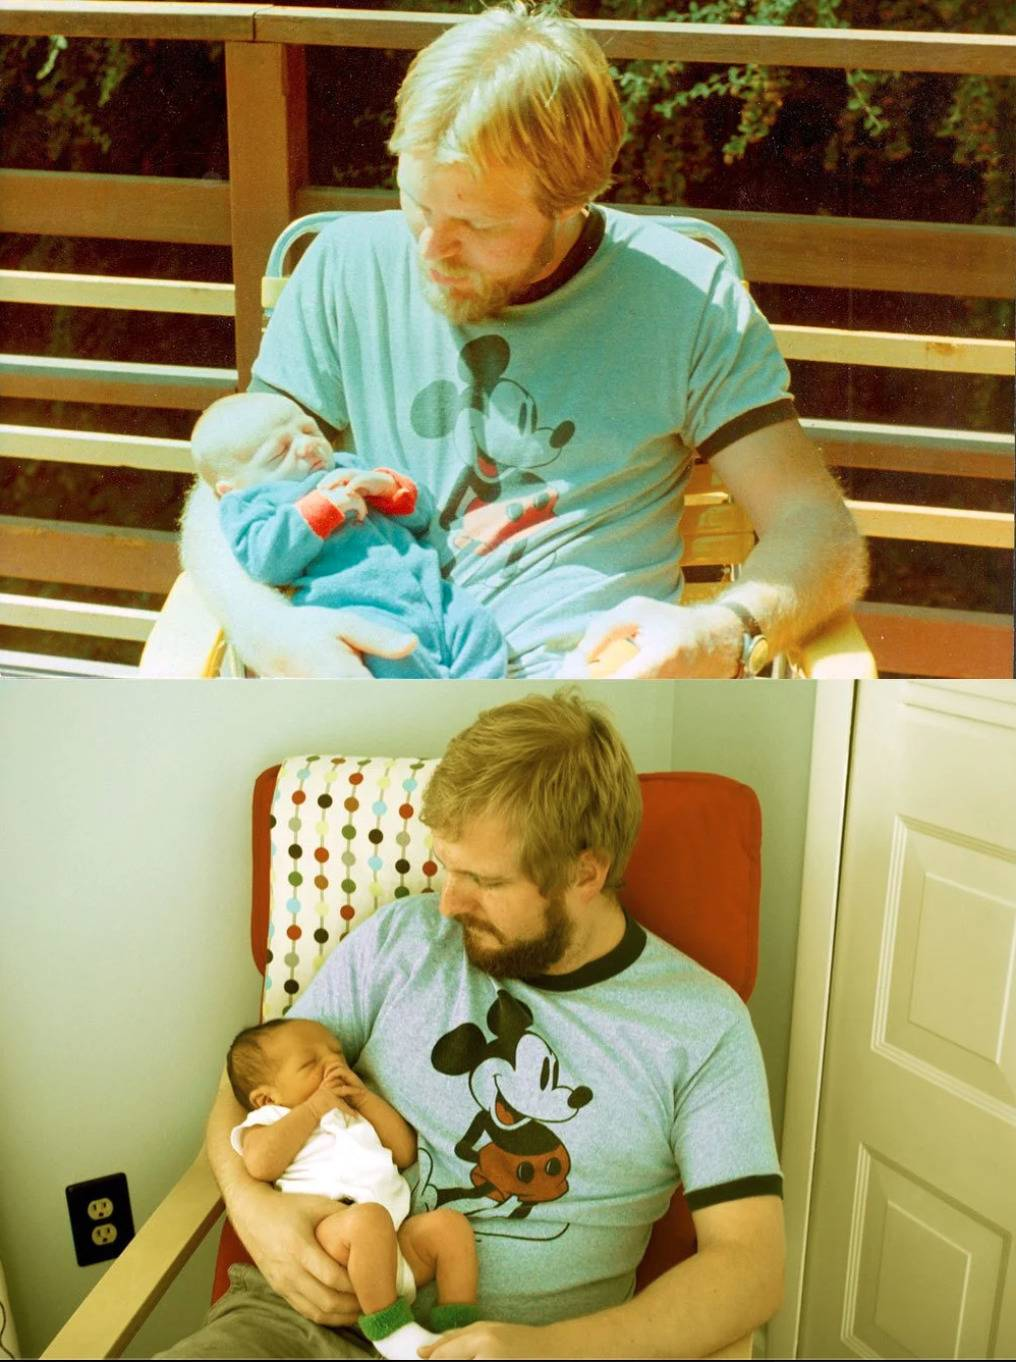 man wears same shirt and holds new born in same pose as father did with him at the same age